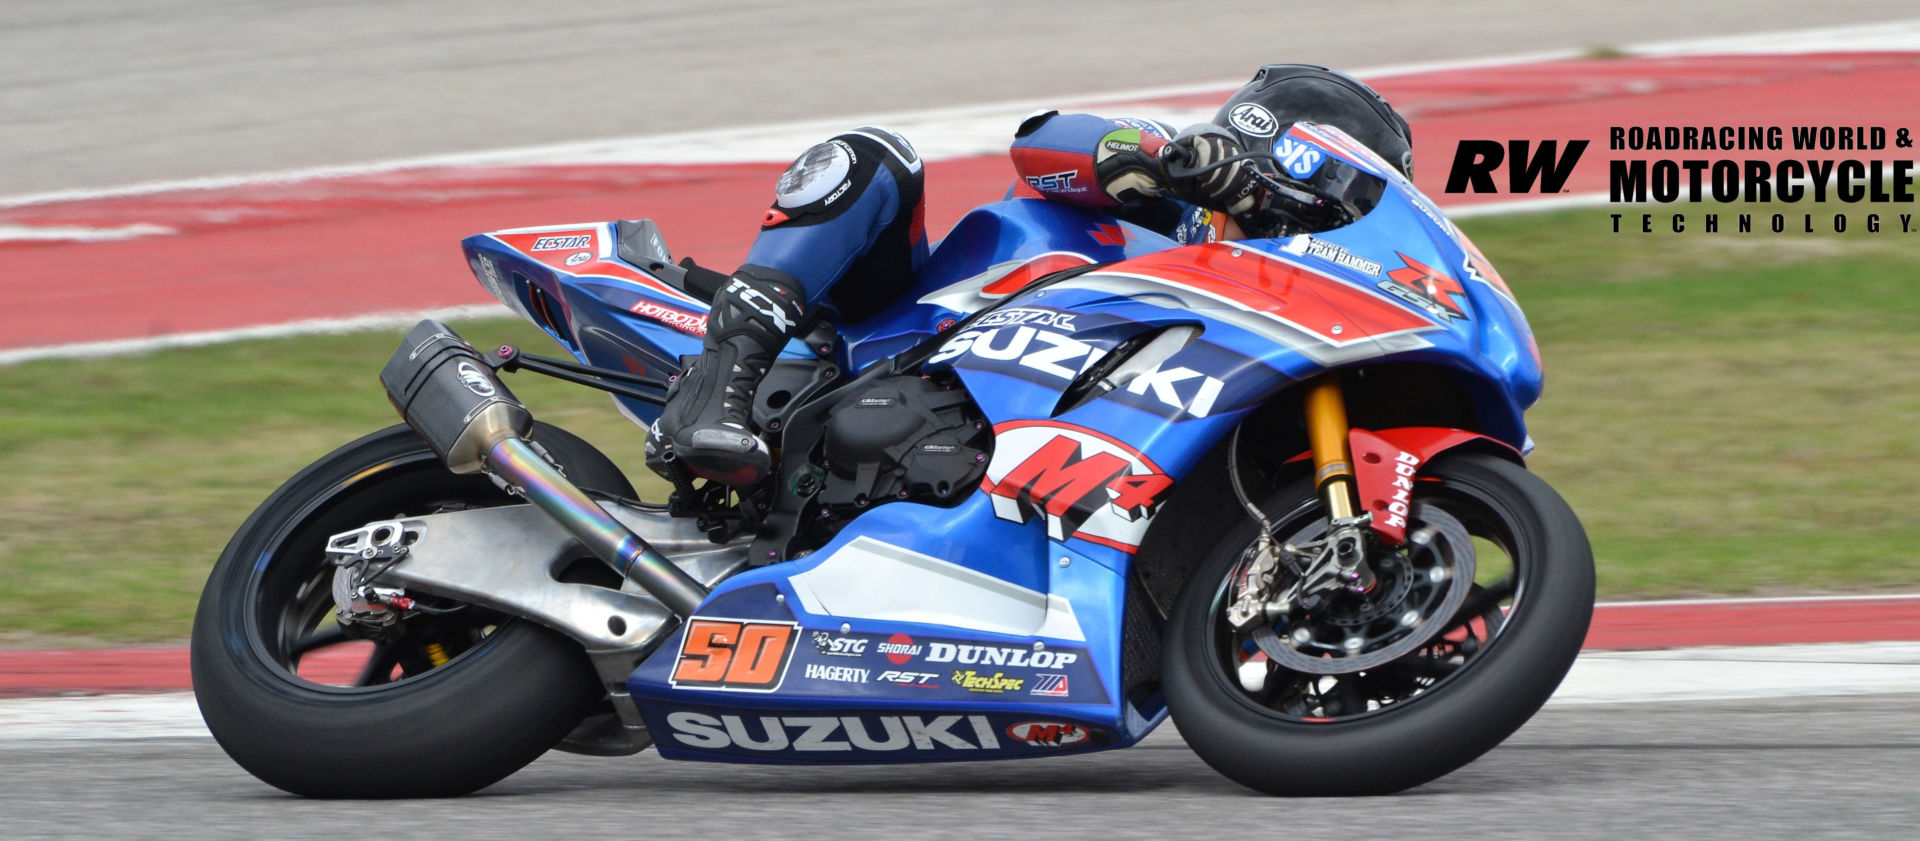 Bobby Fong (50) in action at Circuit of The Americas. Photo by David Swarts.